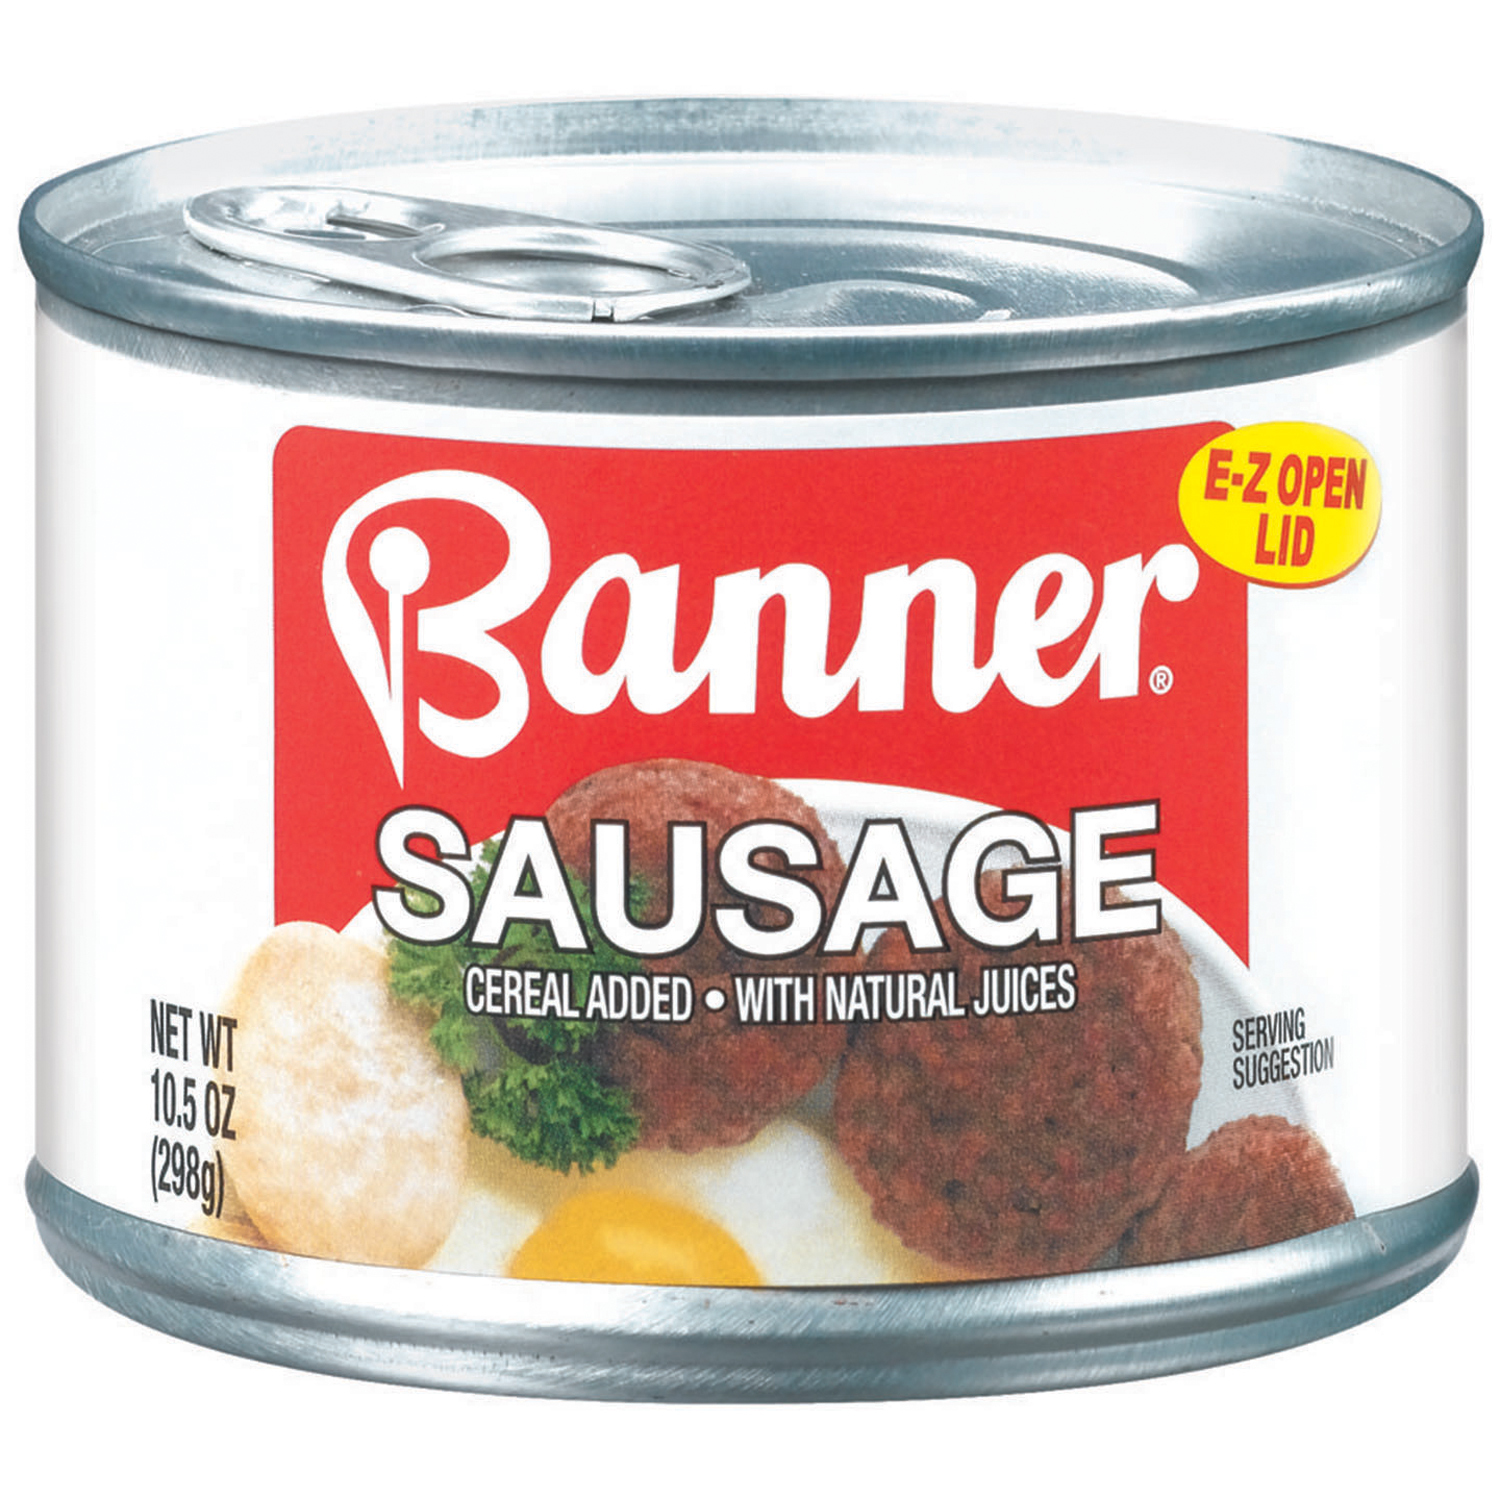 Banner W Natural Juices Sausage 10.5 Oz Can by Pinnacle Foods Group, Llc